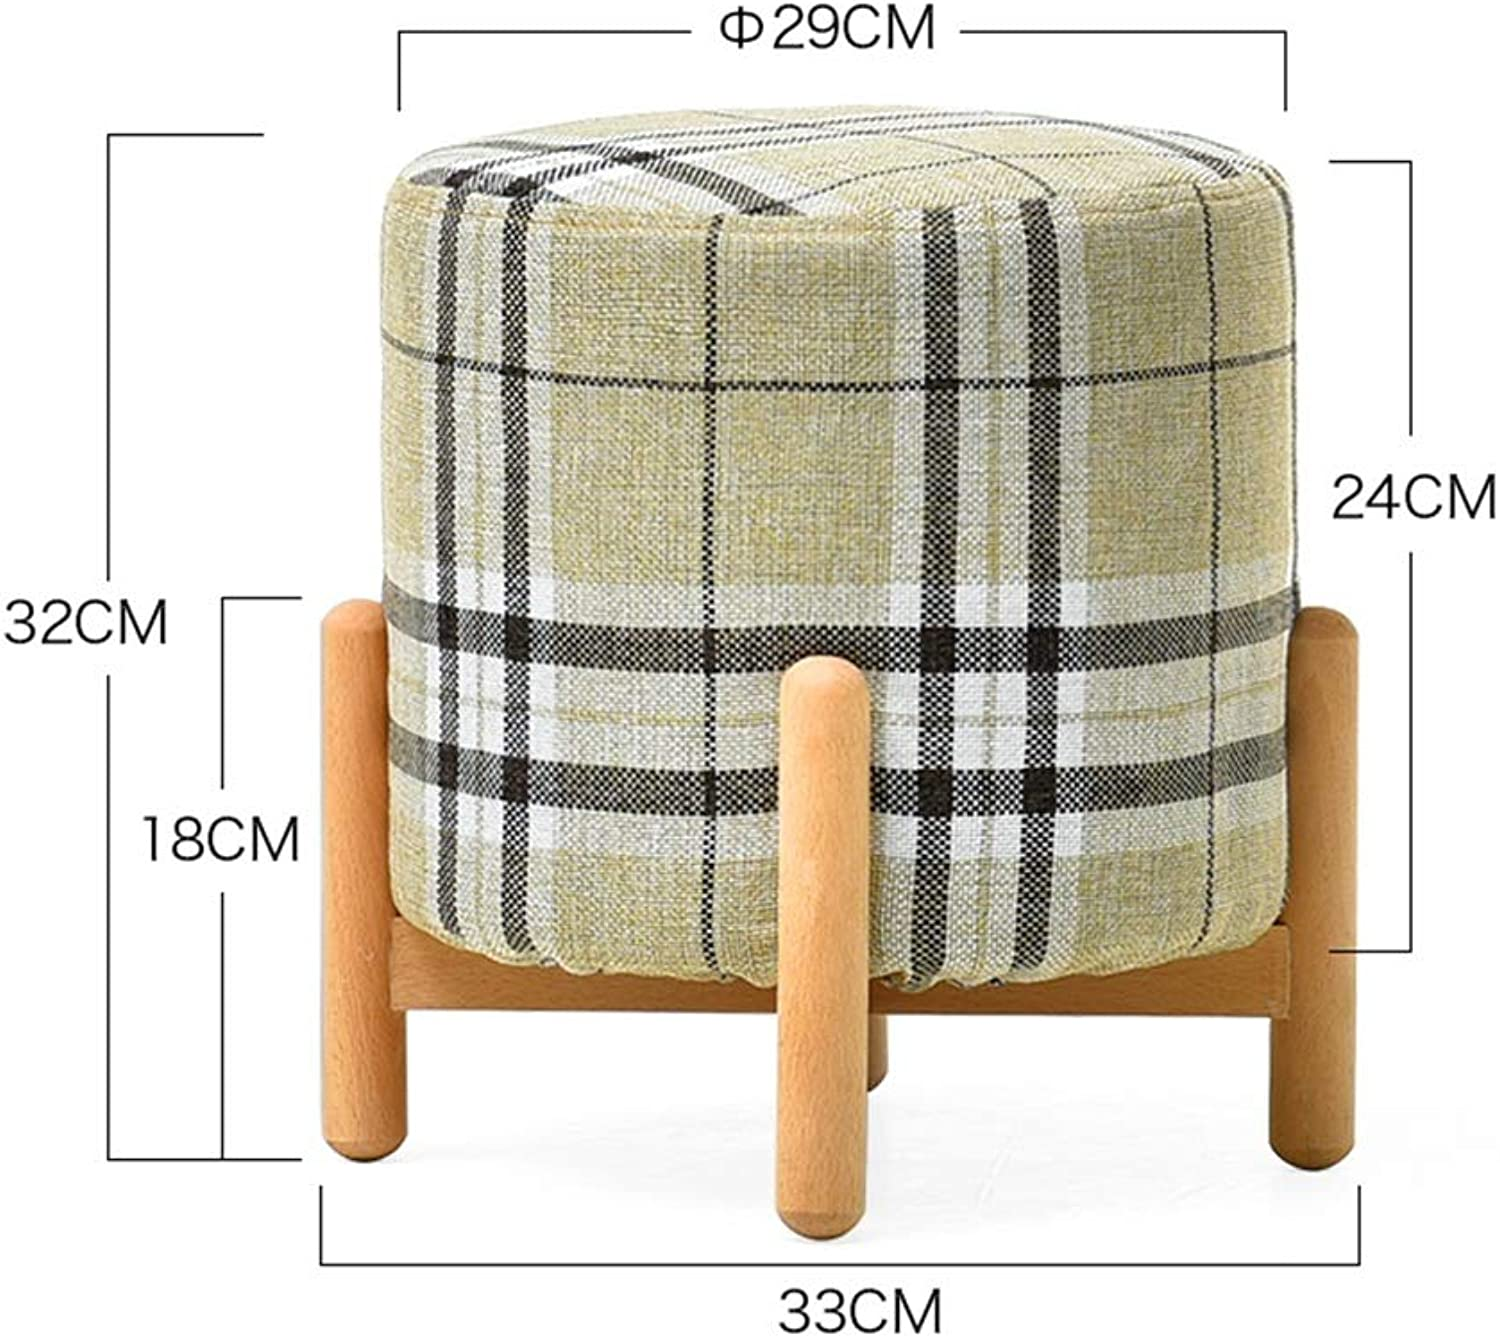 ZHAOYONGLI Footstools,Otools Solid Wood Home Small Bench Creative Sofa Stool Living Room Coffee Table Stool for shoes Bench (color   Log color Stripes, Size   29  29  32cm)